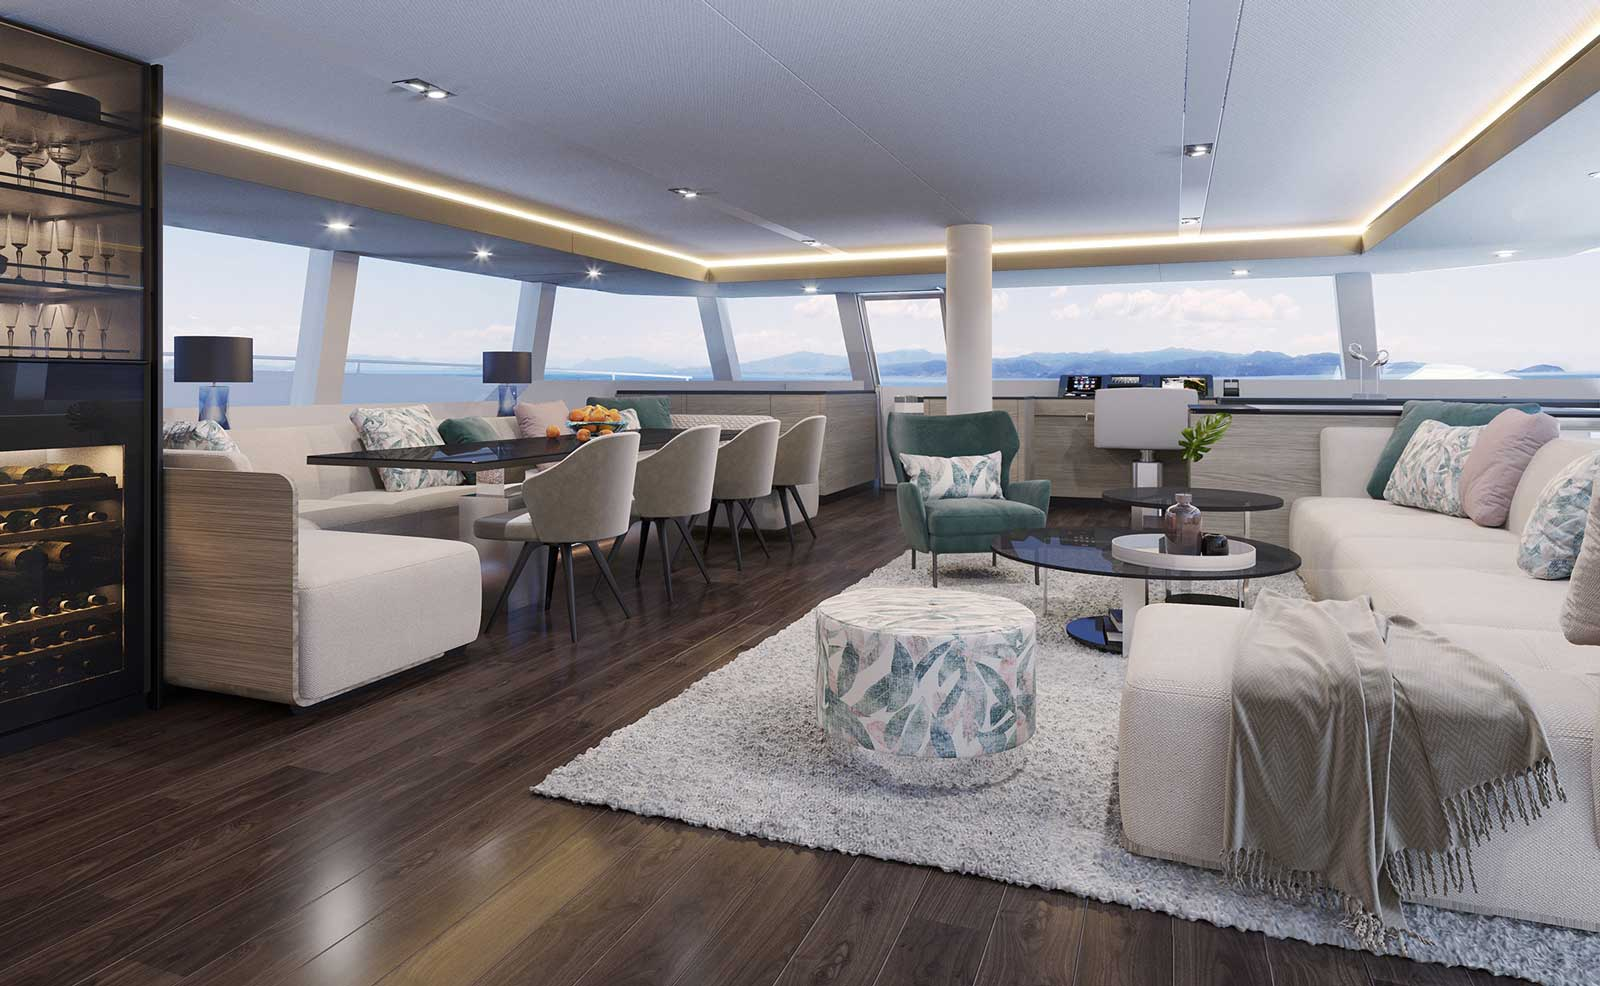 Main saloon of the Sunreef 70 Eco with two zones, dining and lounging areas, all in bright upholstery with tropical green and rose elements.